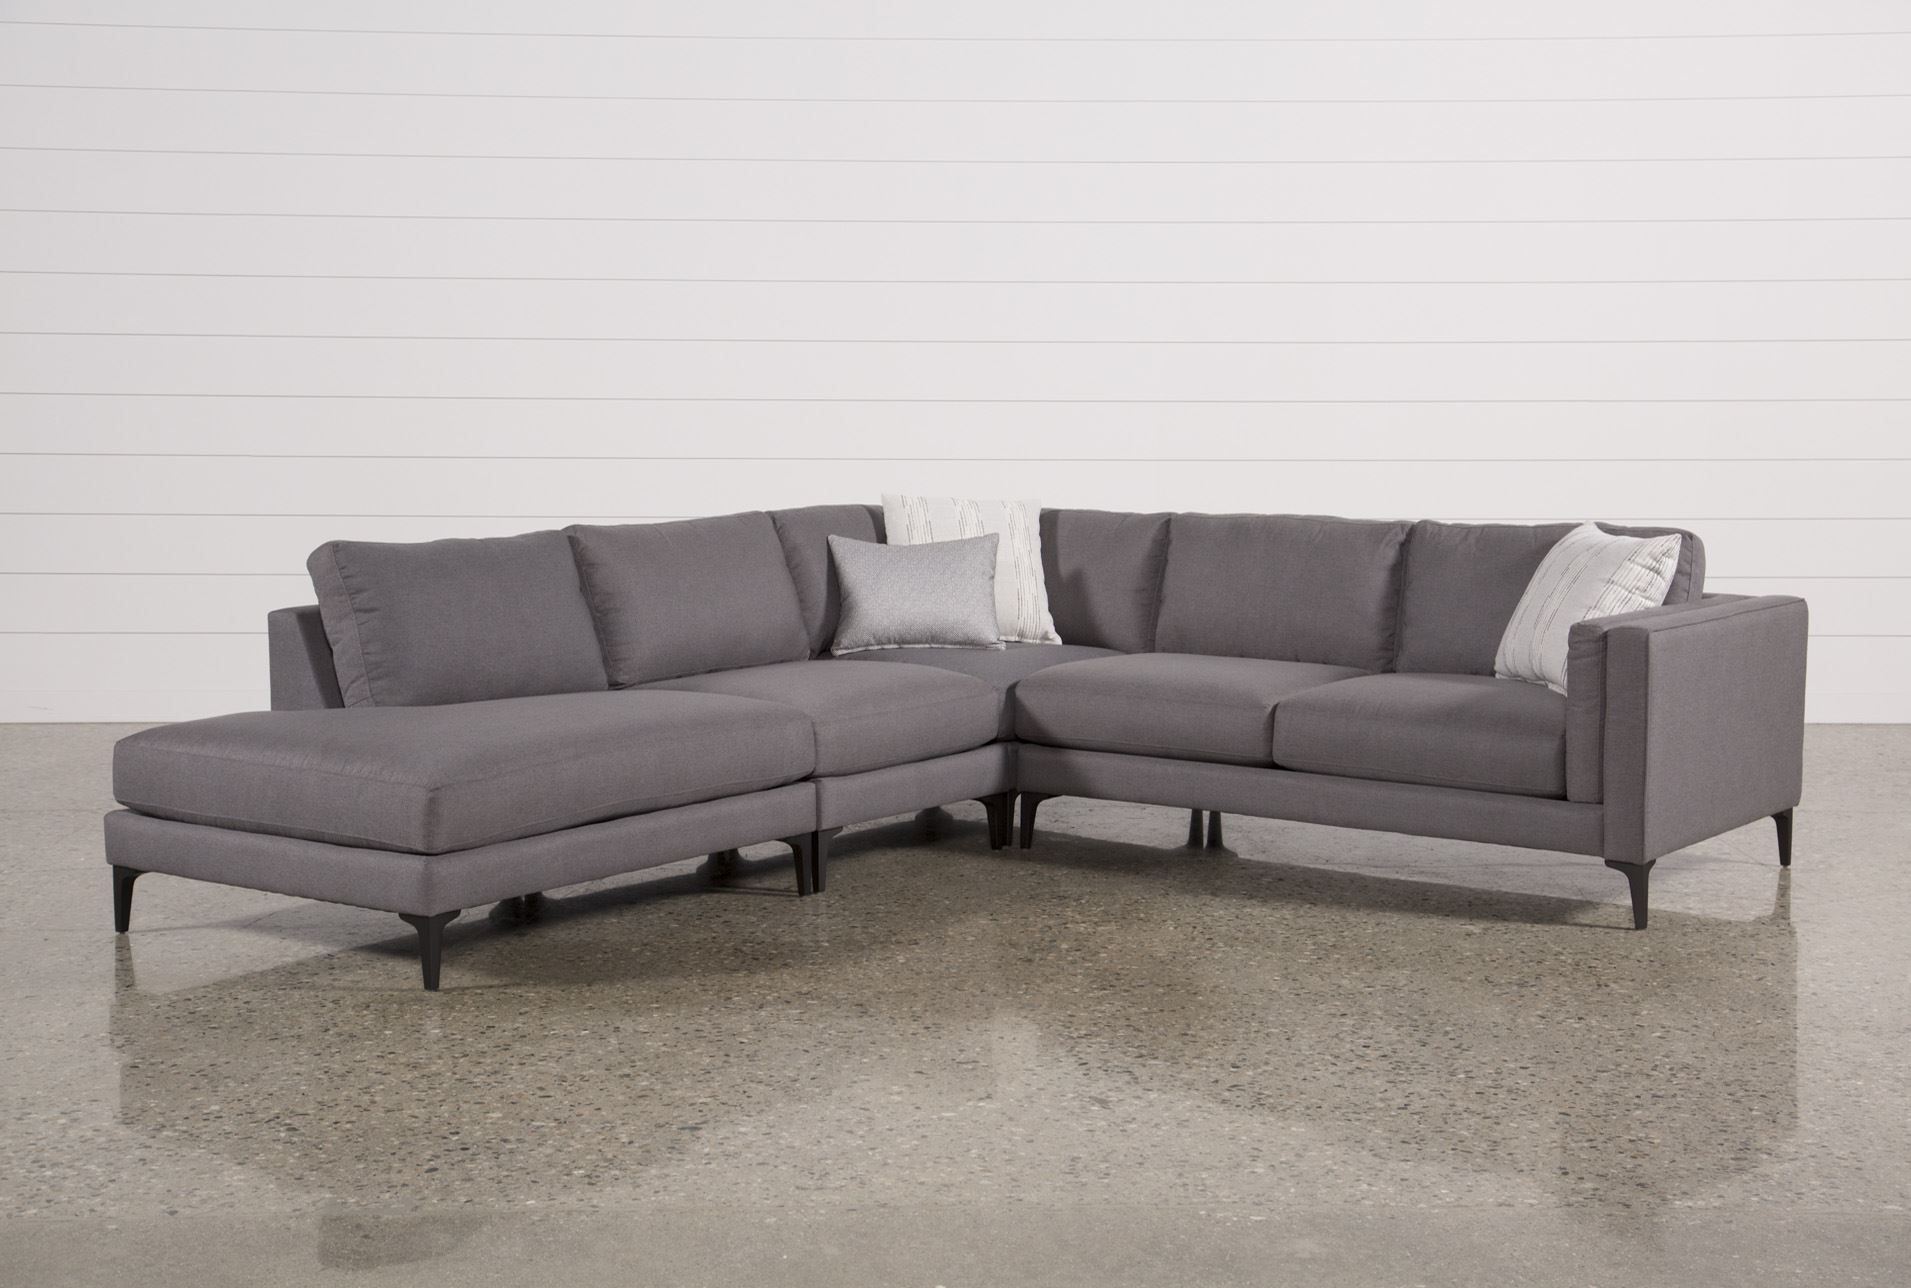 Living Spaces 207585 Signature Mi Casa Living Room Kitchen Couch House Design